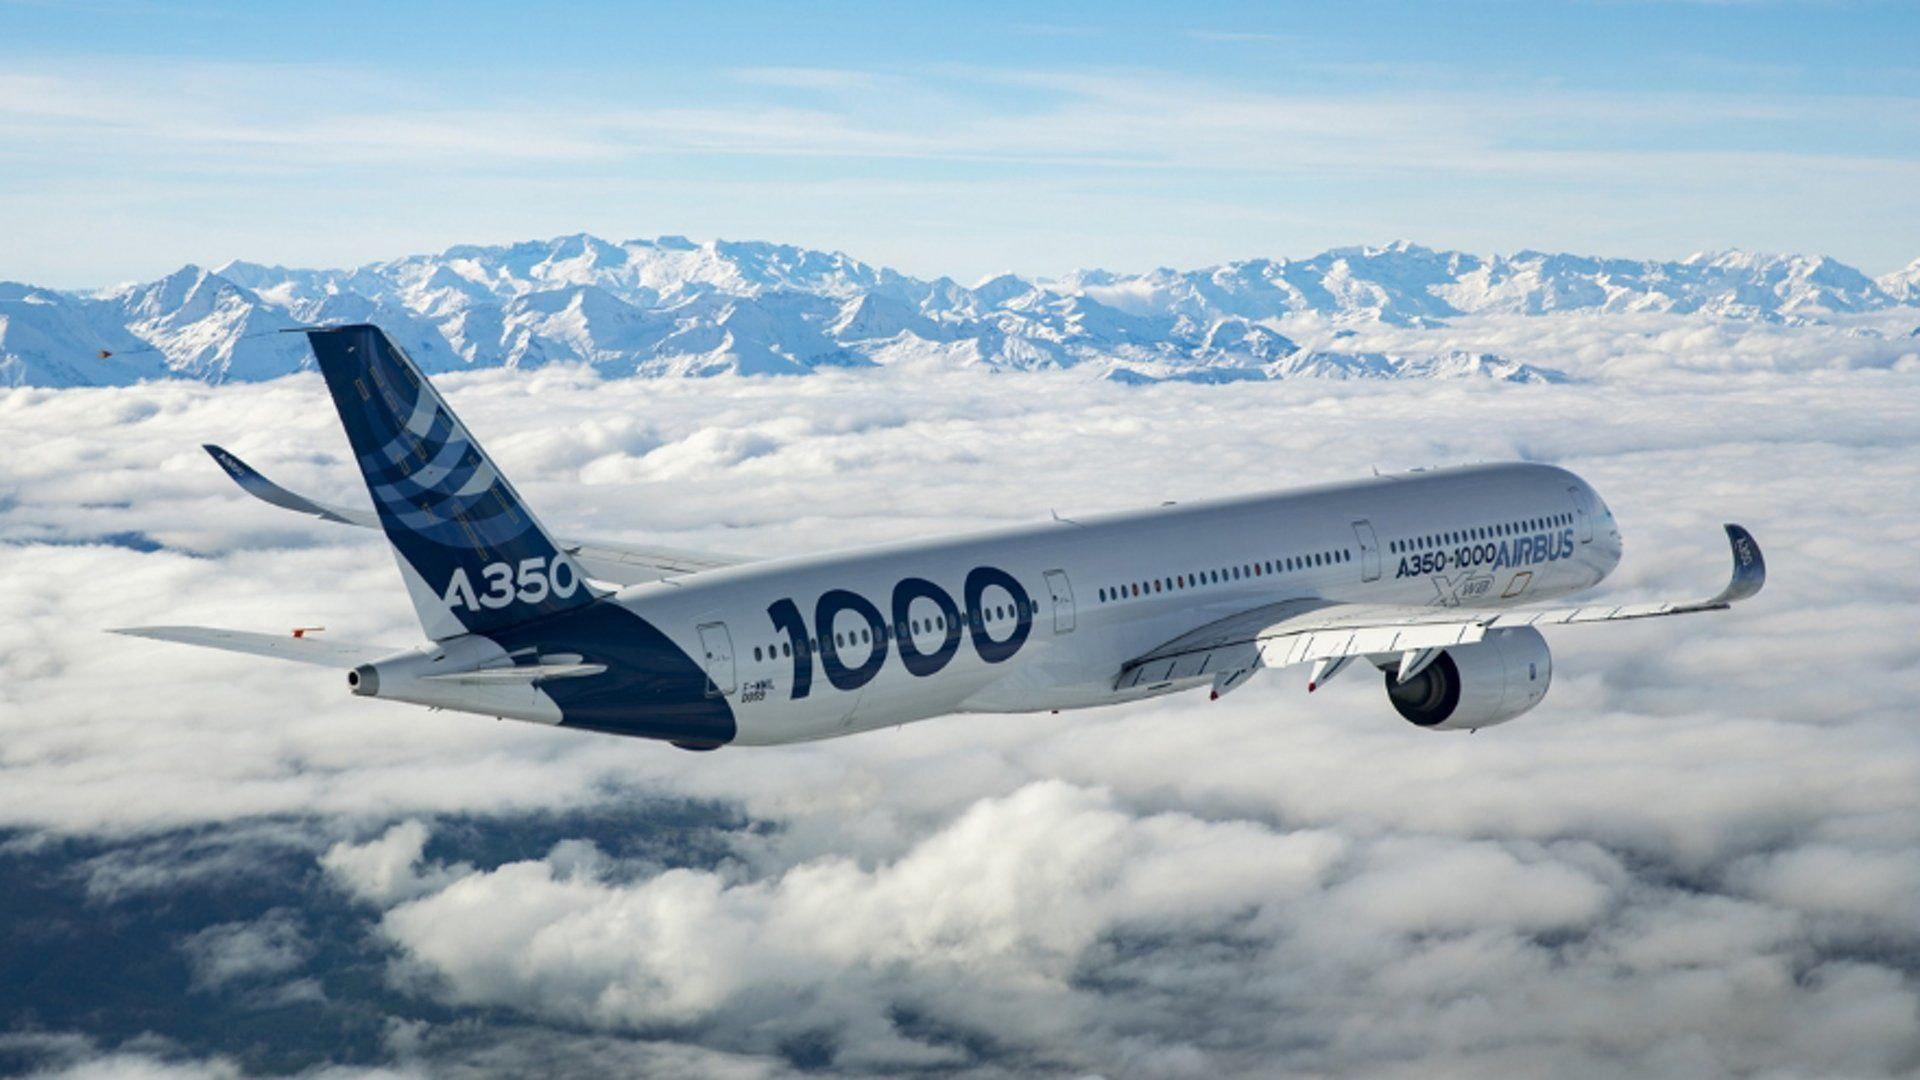 The Airbus A350-1000